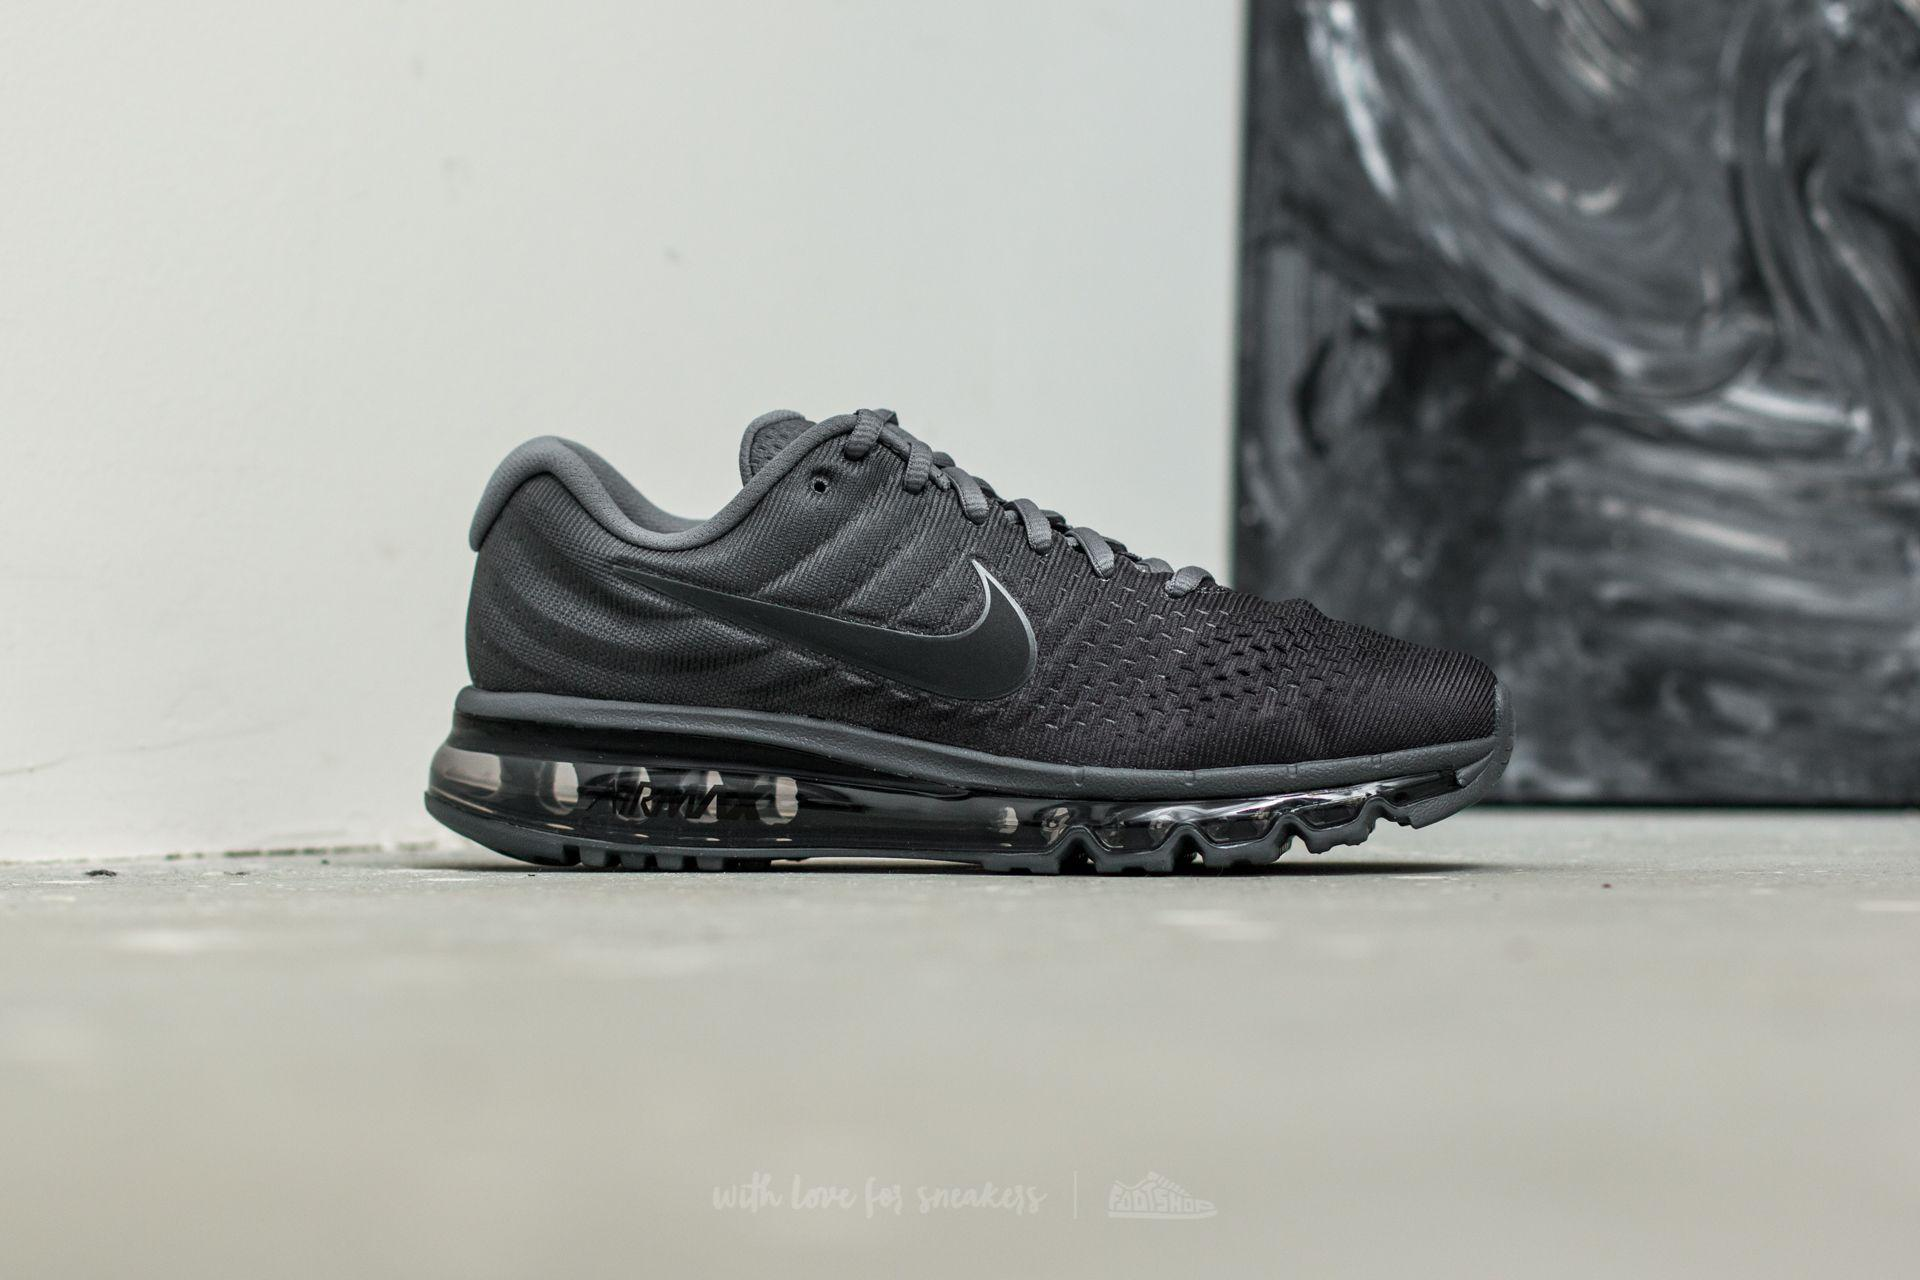 online retailer 693a4 aed7d ... cheapest lyst nike air max 2017 cool grey anthracite dark grey in gray  for men 48d09